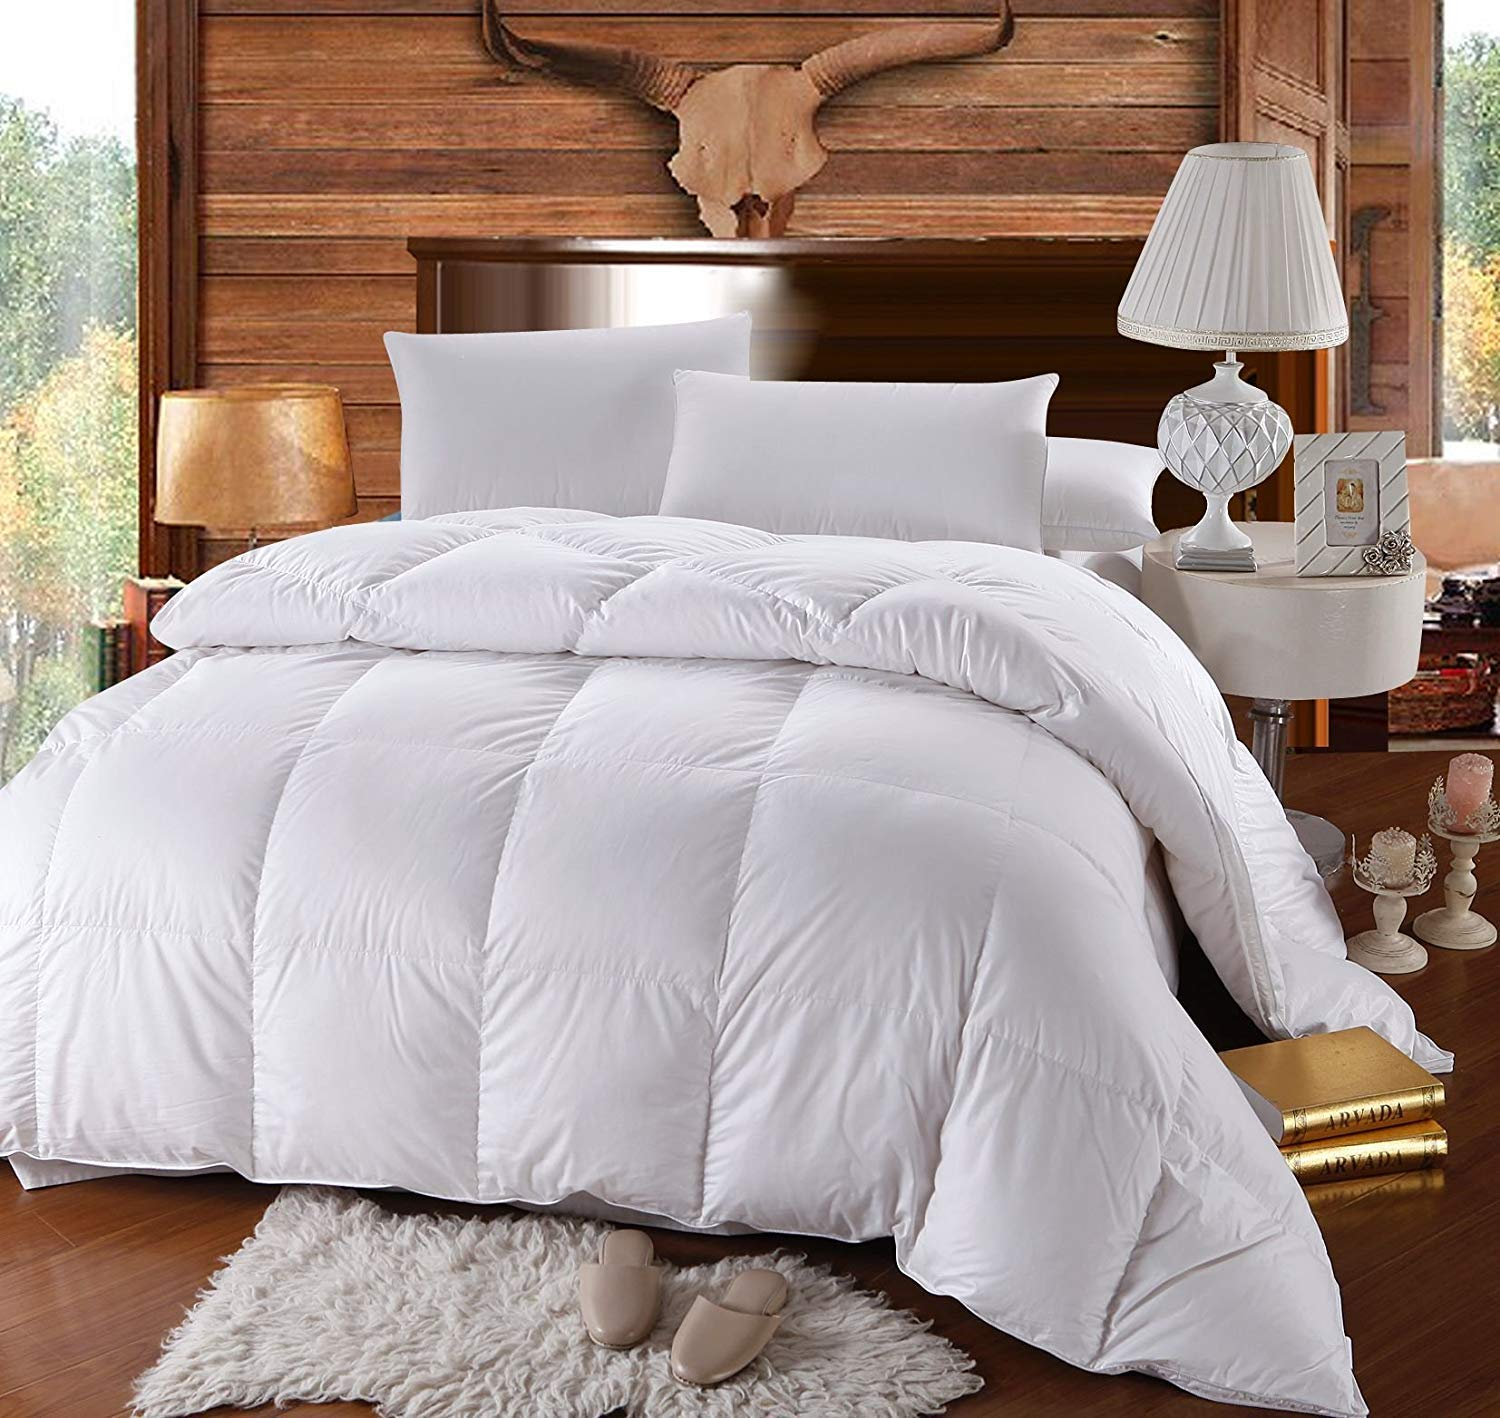 Royal Hotel Twin/Twin-XL Size Down-Comforter 500-Thread-Count Down Comforter 100 Percent Cotton 500 TC - 750FP - 40Oz - Solid White Royal Hotel Bedding